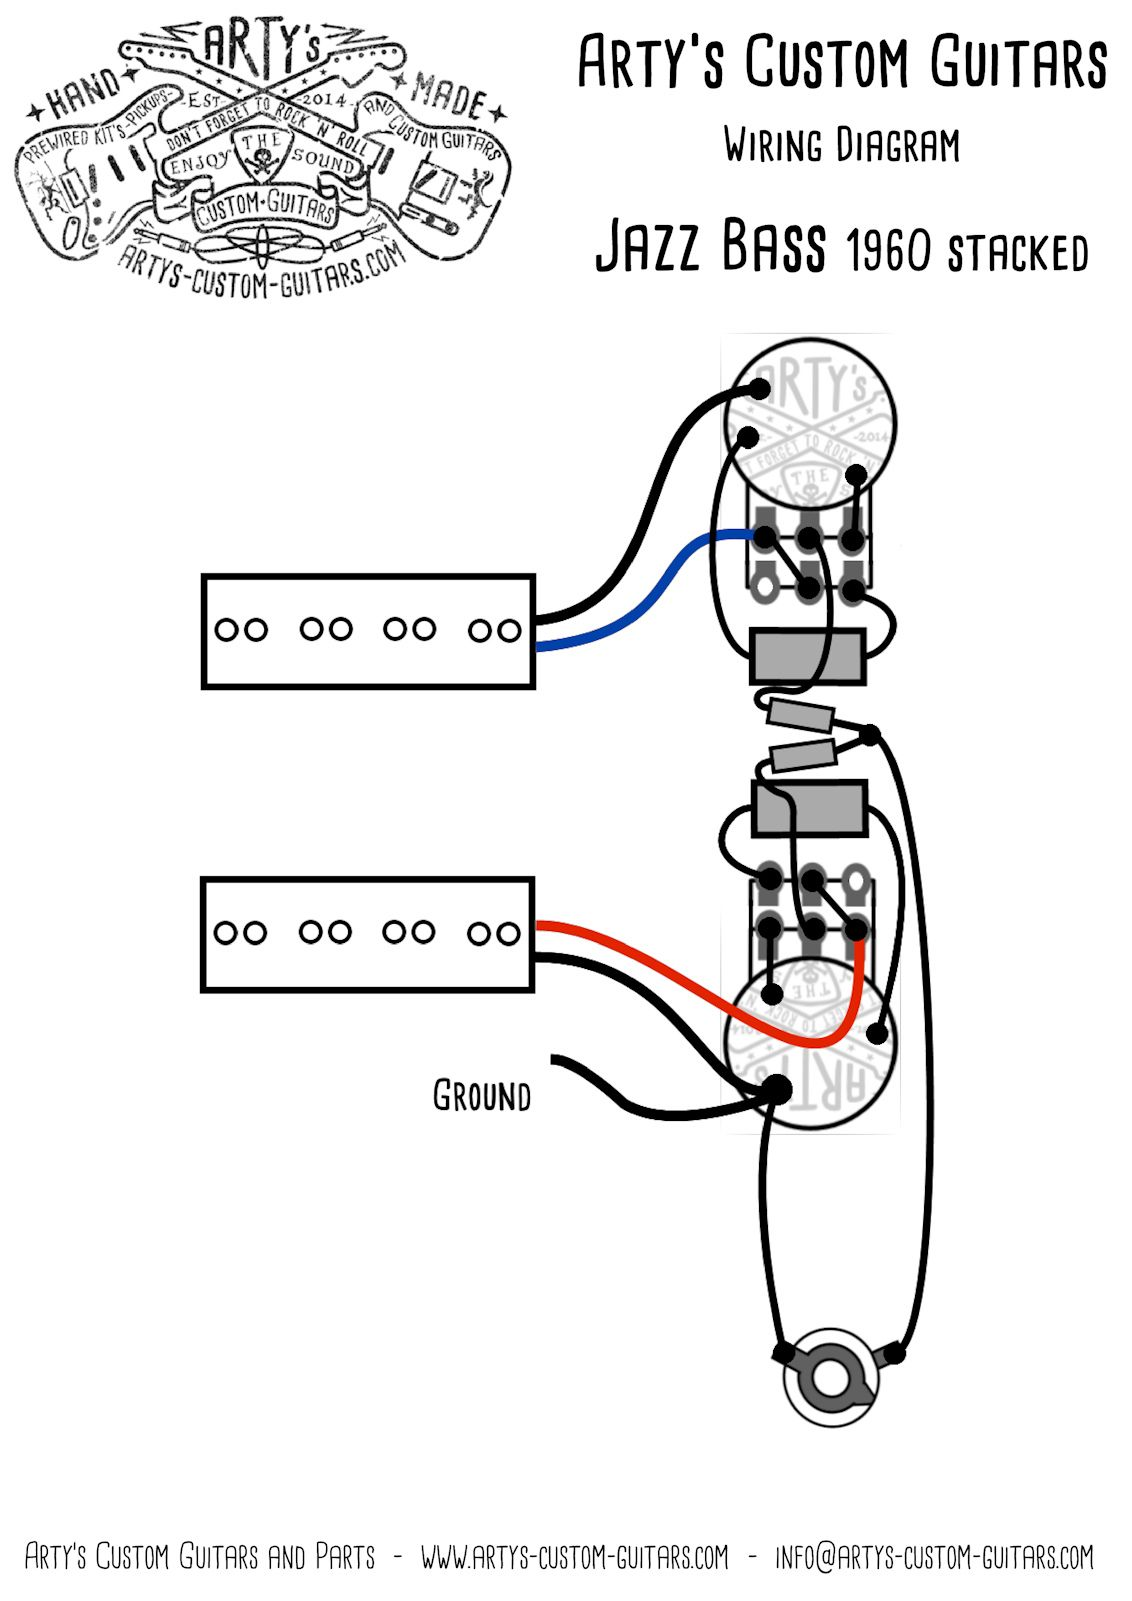 hight resolution of arty s custom guitars vintage pre wired prewired kit wiring assembly harness arty jazz bass 1960 1962 stacked pots 3 hole j bass